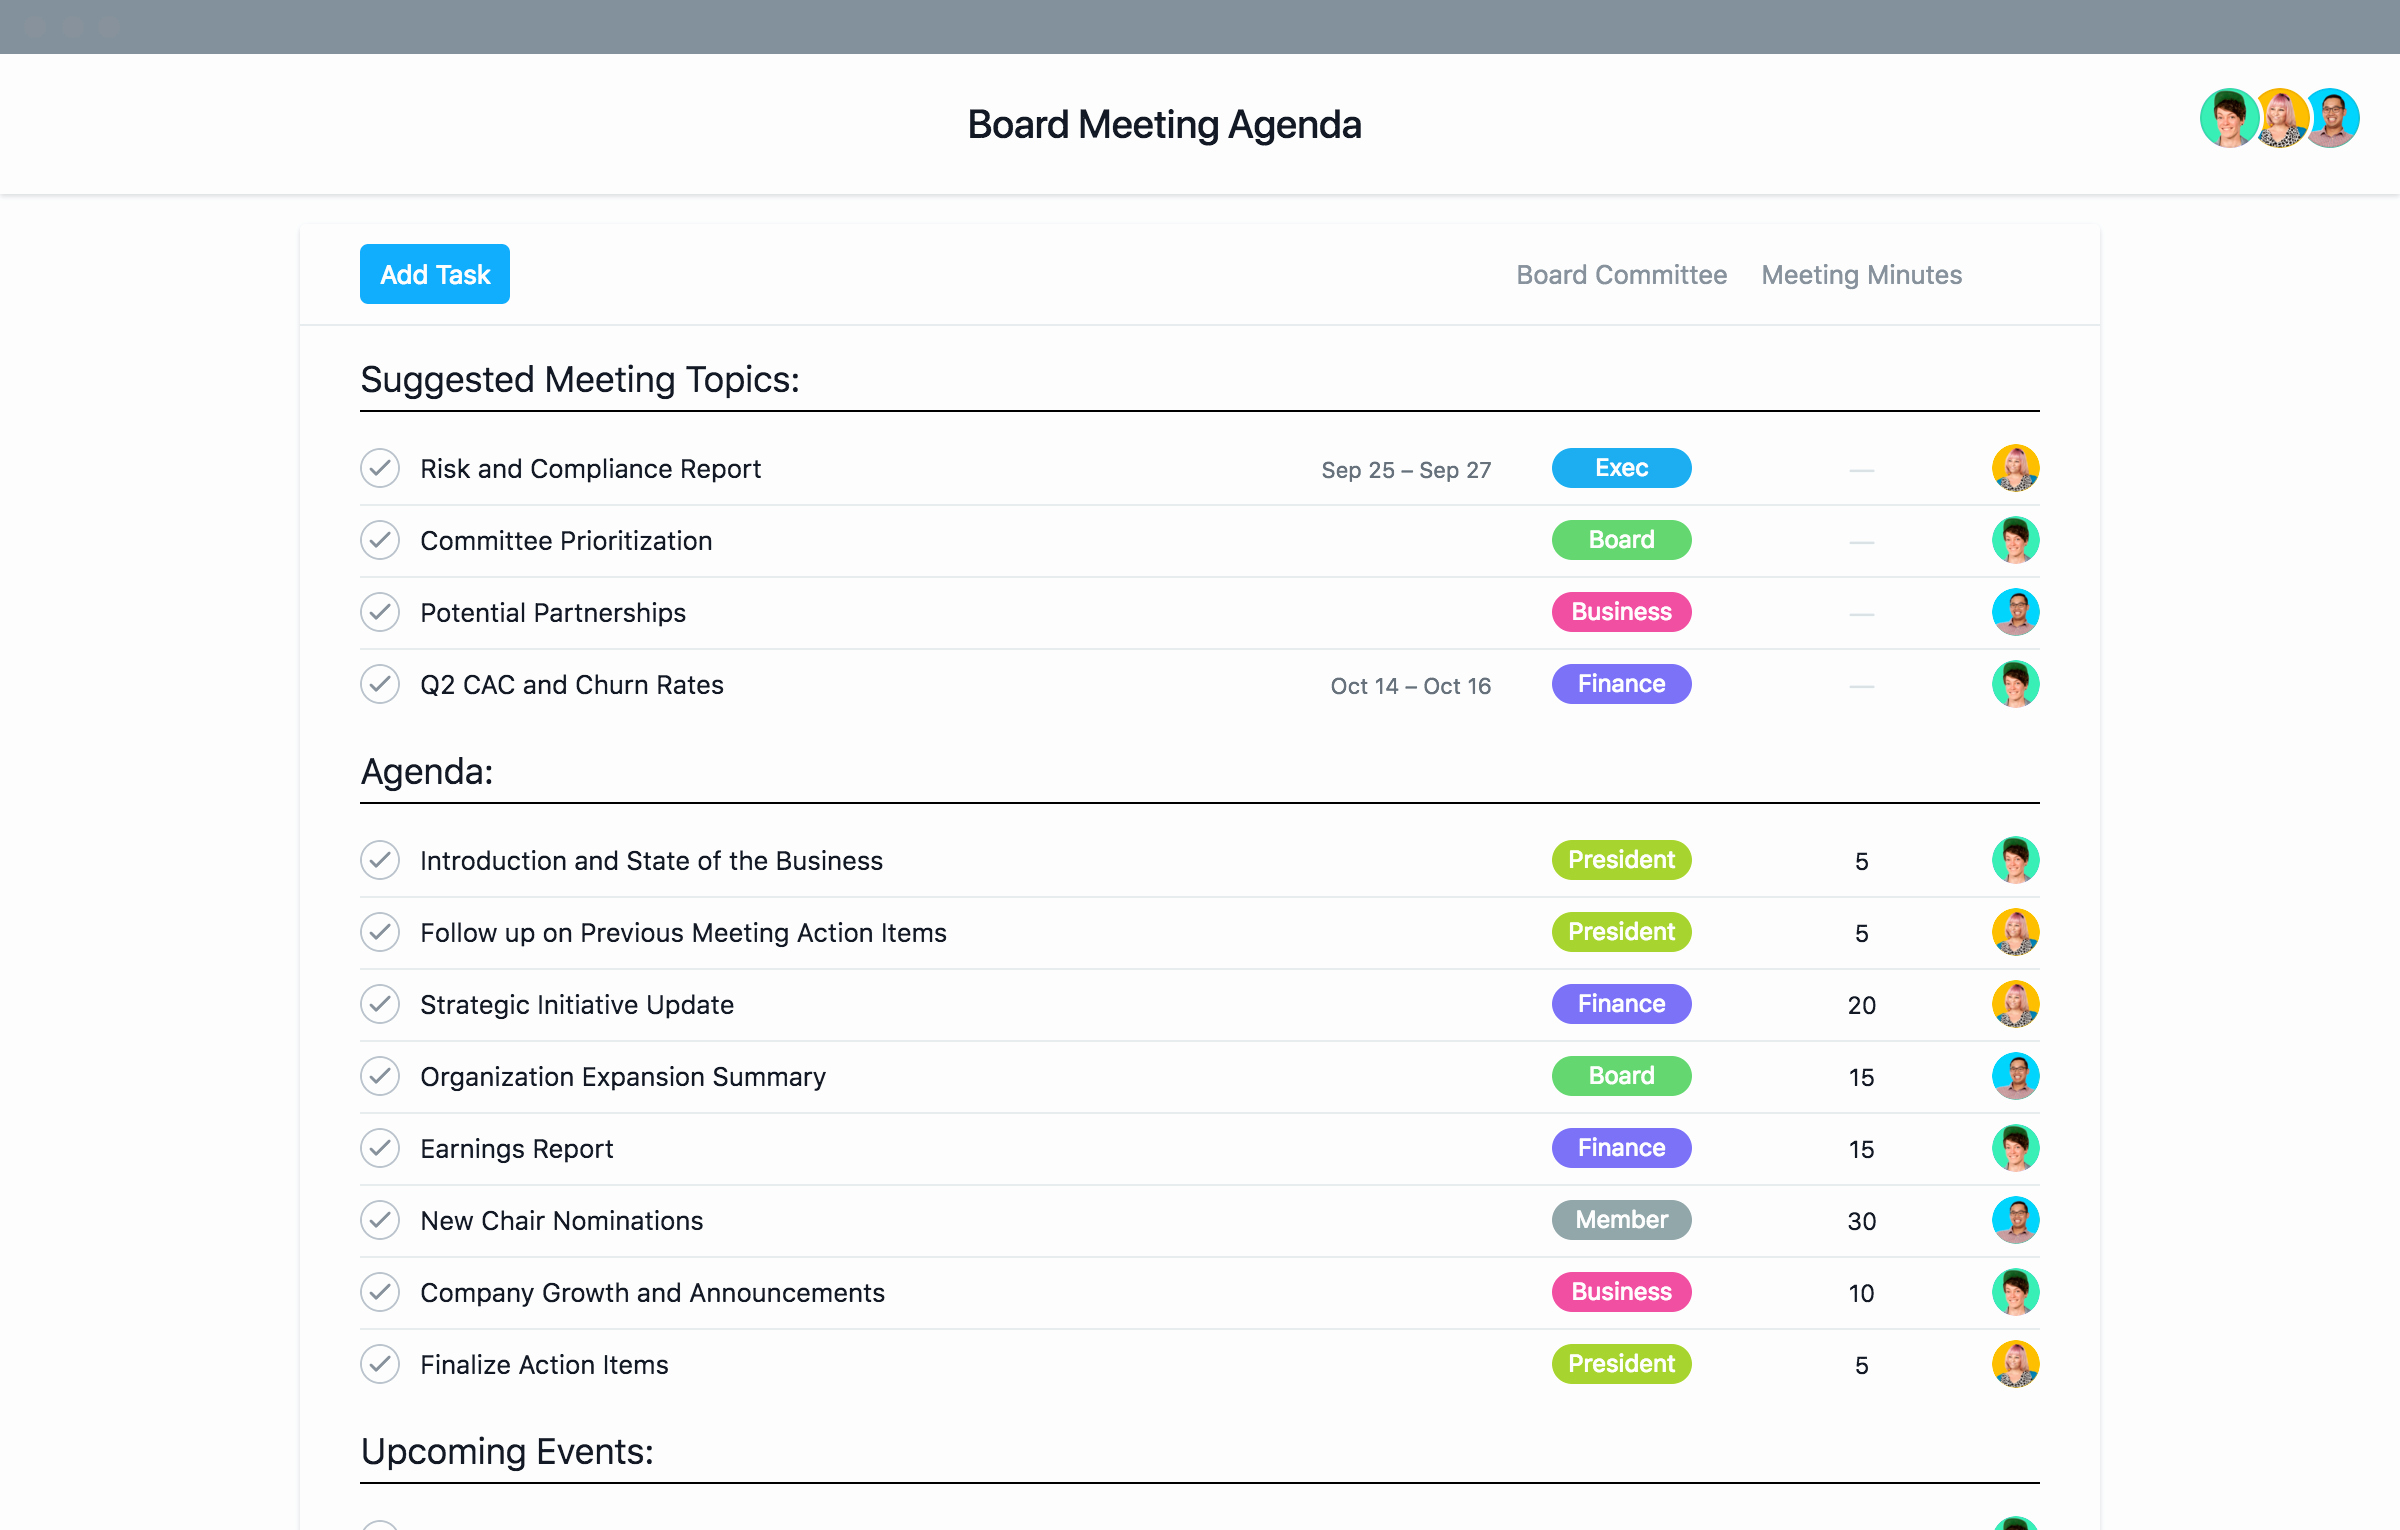 Nonprofit Board Meeting Agenda Template Lovely Nonprofit Board Meeting Agenda Template and Best Practices